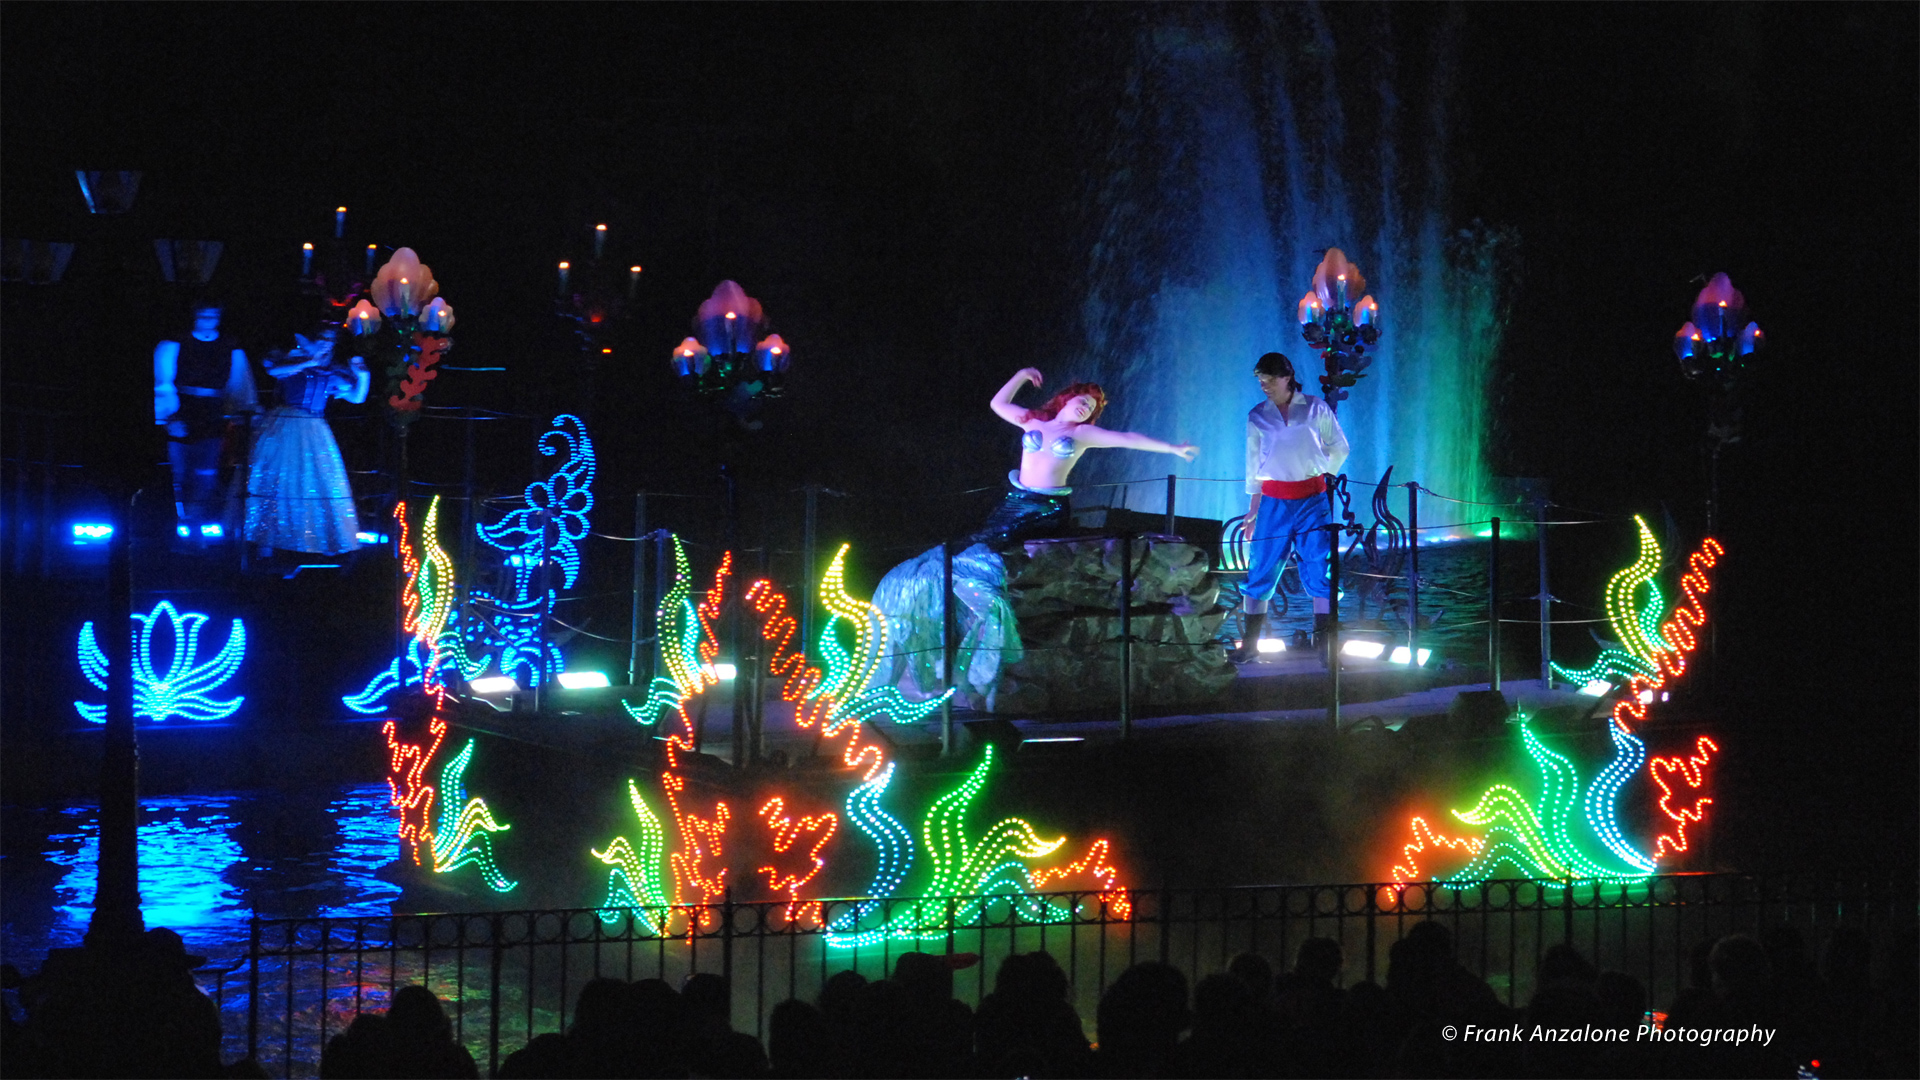 desktop fantasmic1 viewer4 desktops image mouseplanet 1920x1080